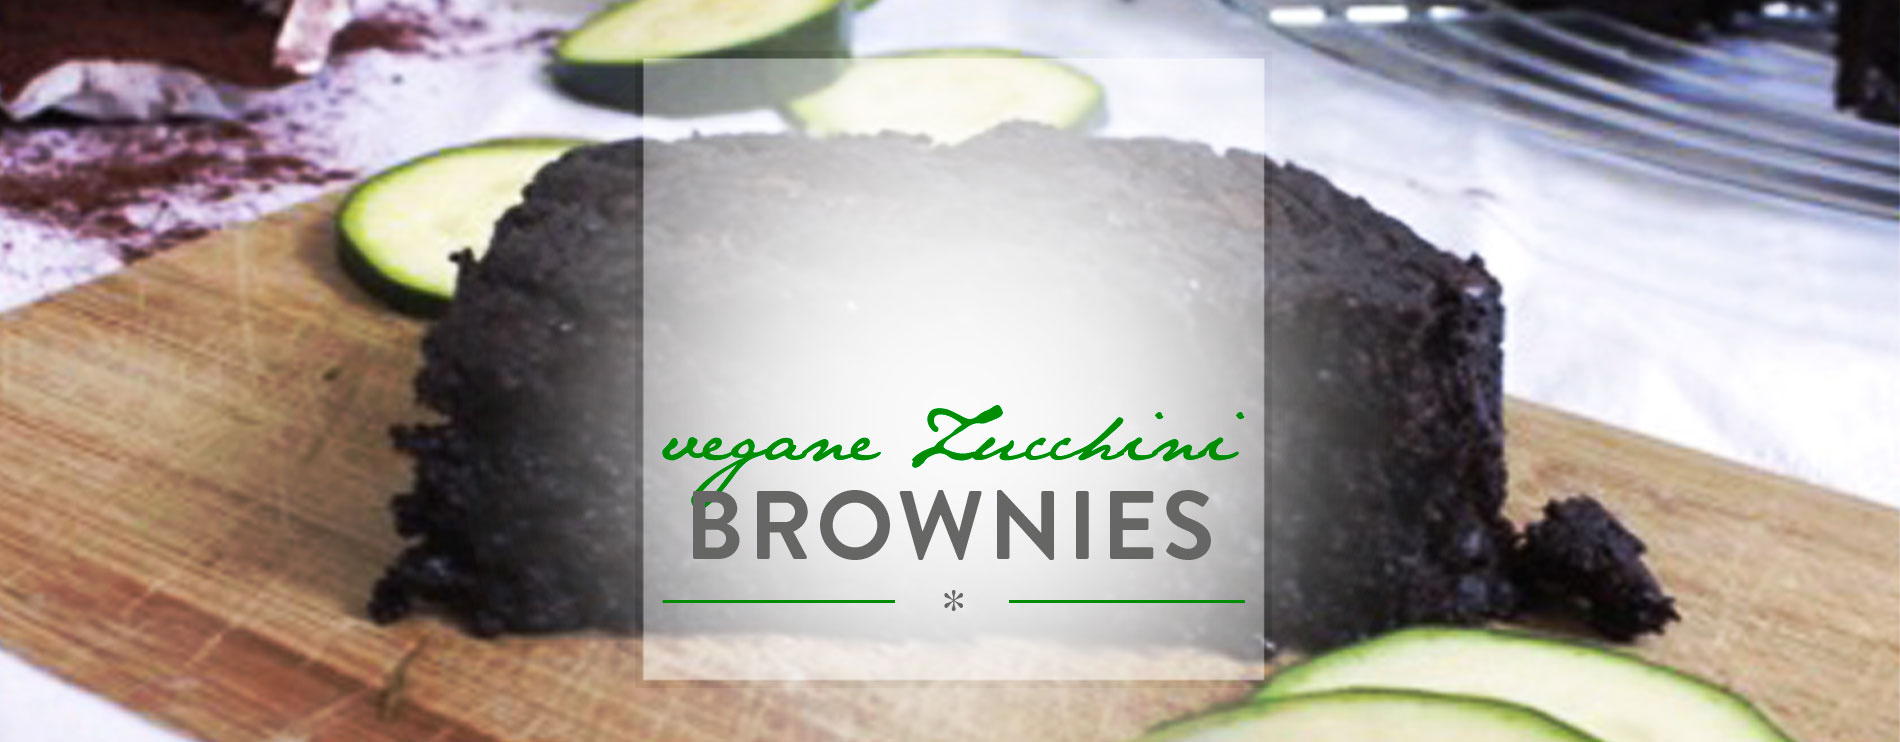 Header Vegane Zucchini Brownies